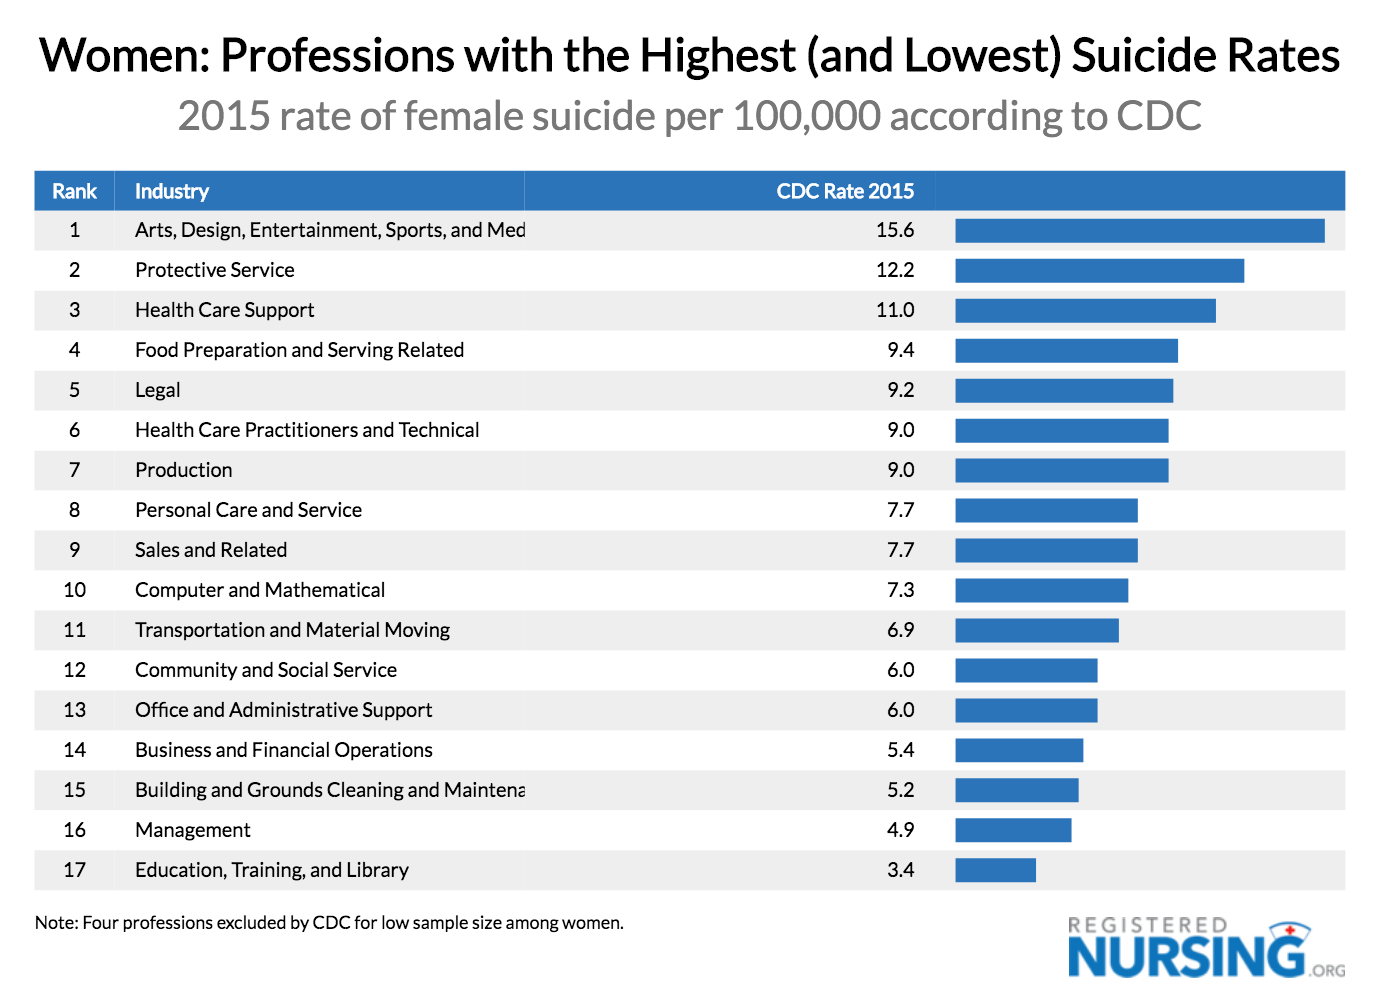 Highest & Lowest Suicide Rates for Women by Profession